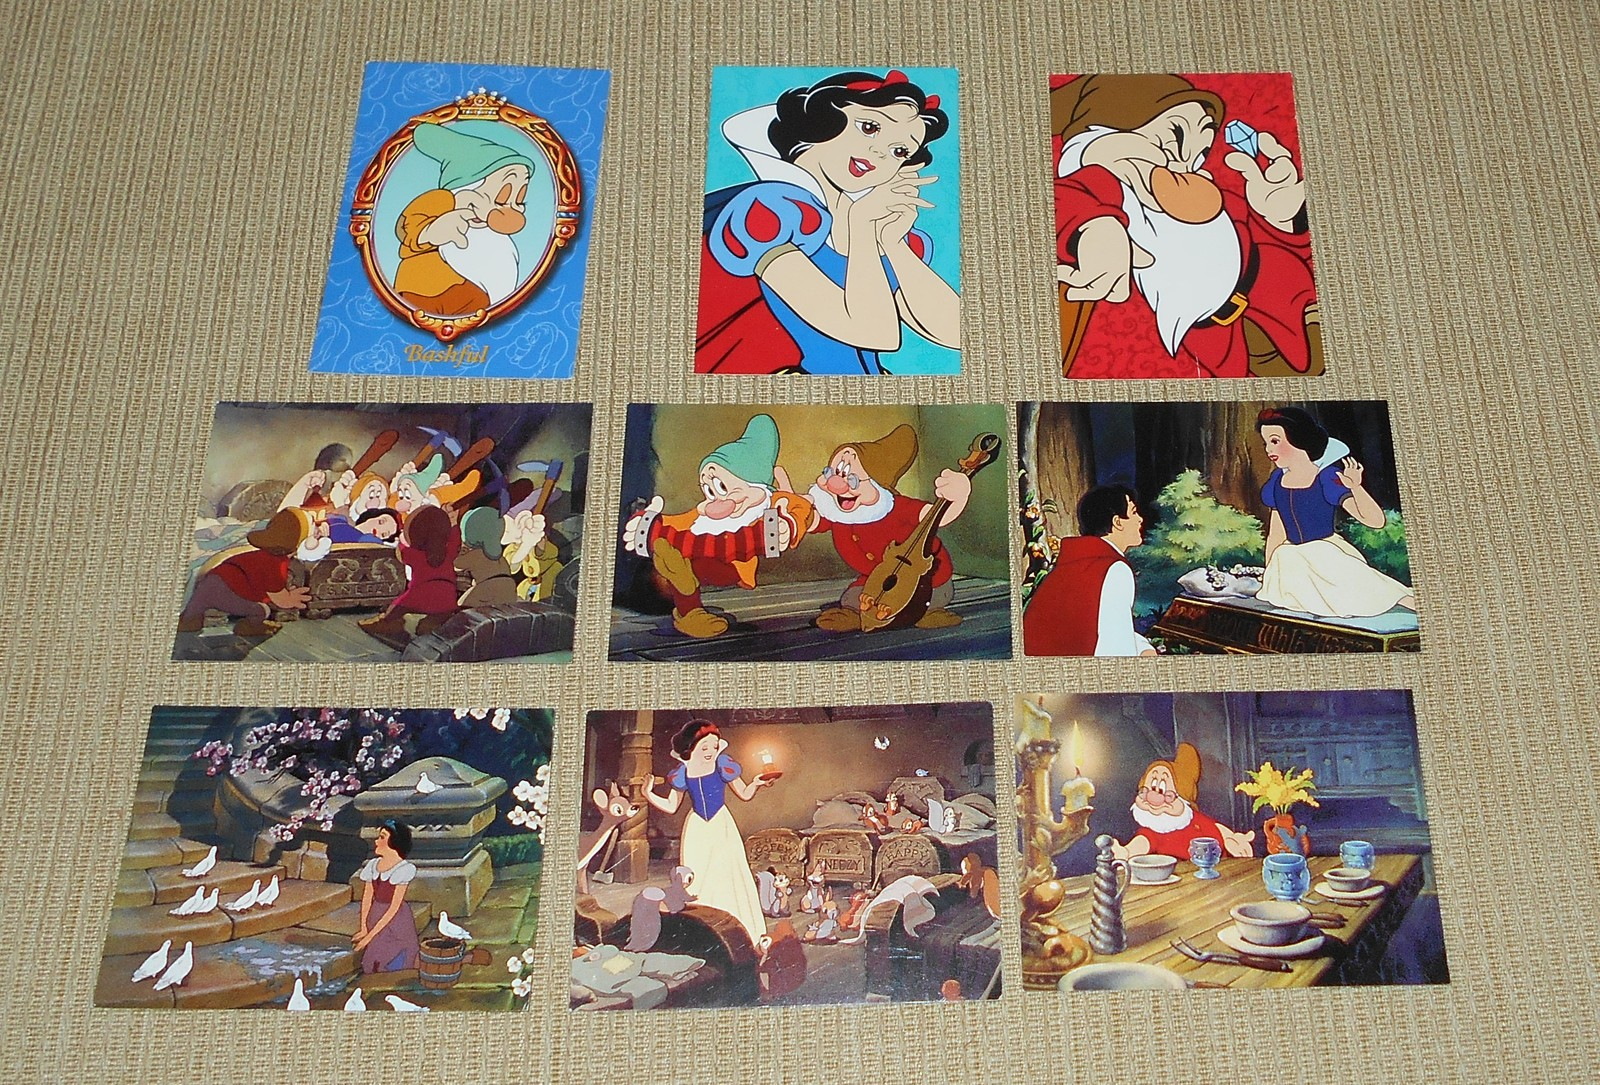 9 Skybox Disney Snow White Trading Cards - #2, 23, 29, 31, 41, 59, 72, 74, 78